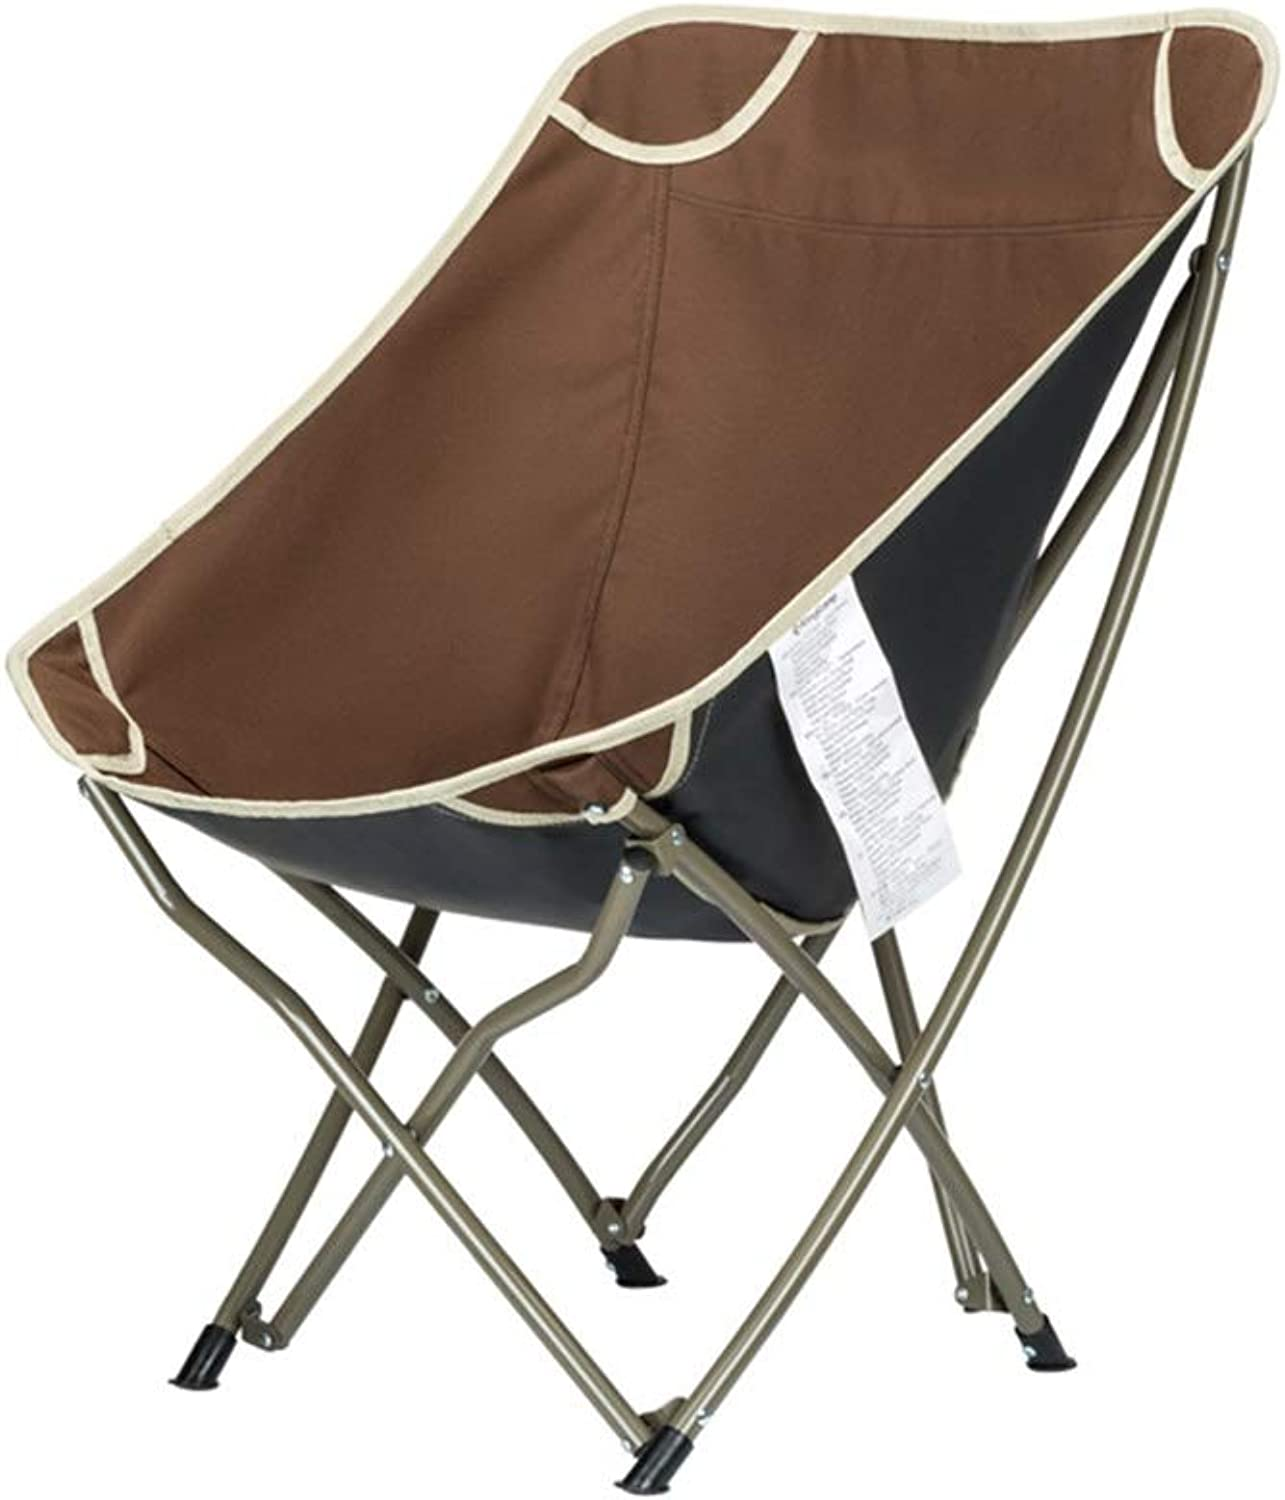 ZHAOYONGLI Footstools,Otools Fishing Chair Portable Folding Stool Lunch Break Chair Backrest Shortfoot Beach Chair Folding Chair (color   Brown 54  60  75cm)